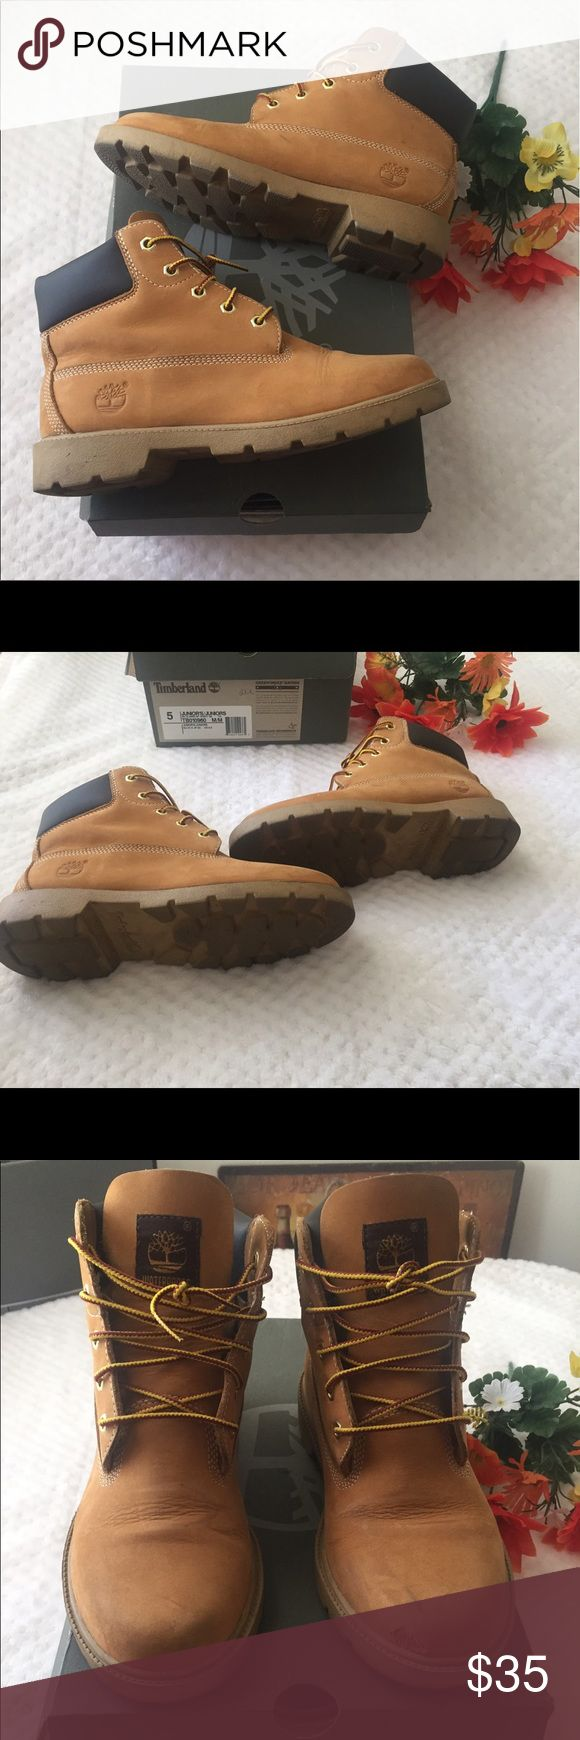 Timberland Boots Women's timberland boots. Has a tear in front left, as shown in pic but still has lots of life left! Price reflected for flaw! Comes with box! Timberland Shoes Winter & Rain Boots